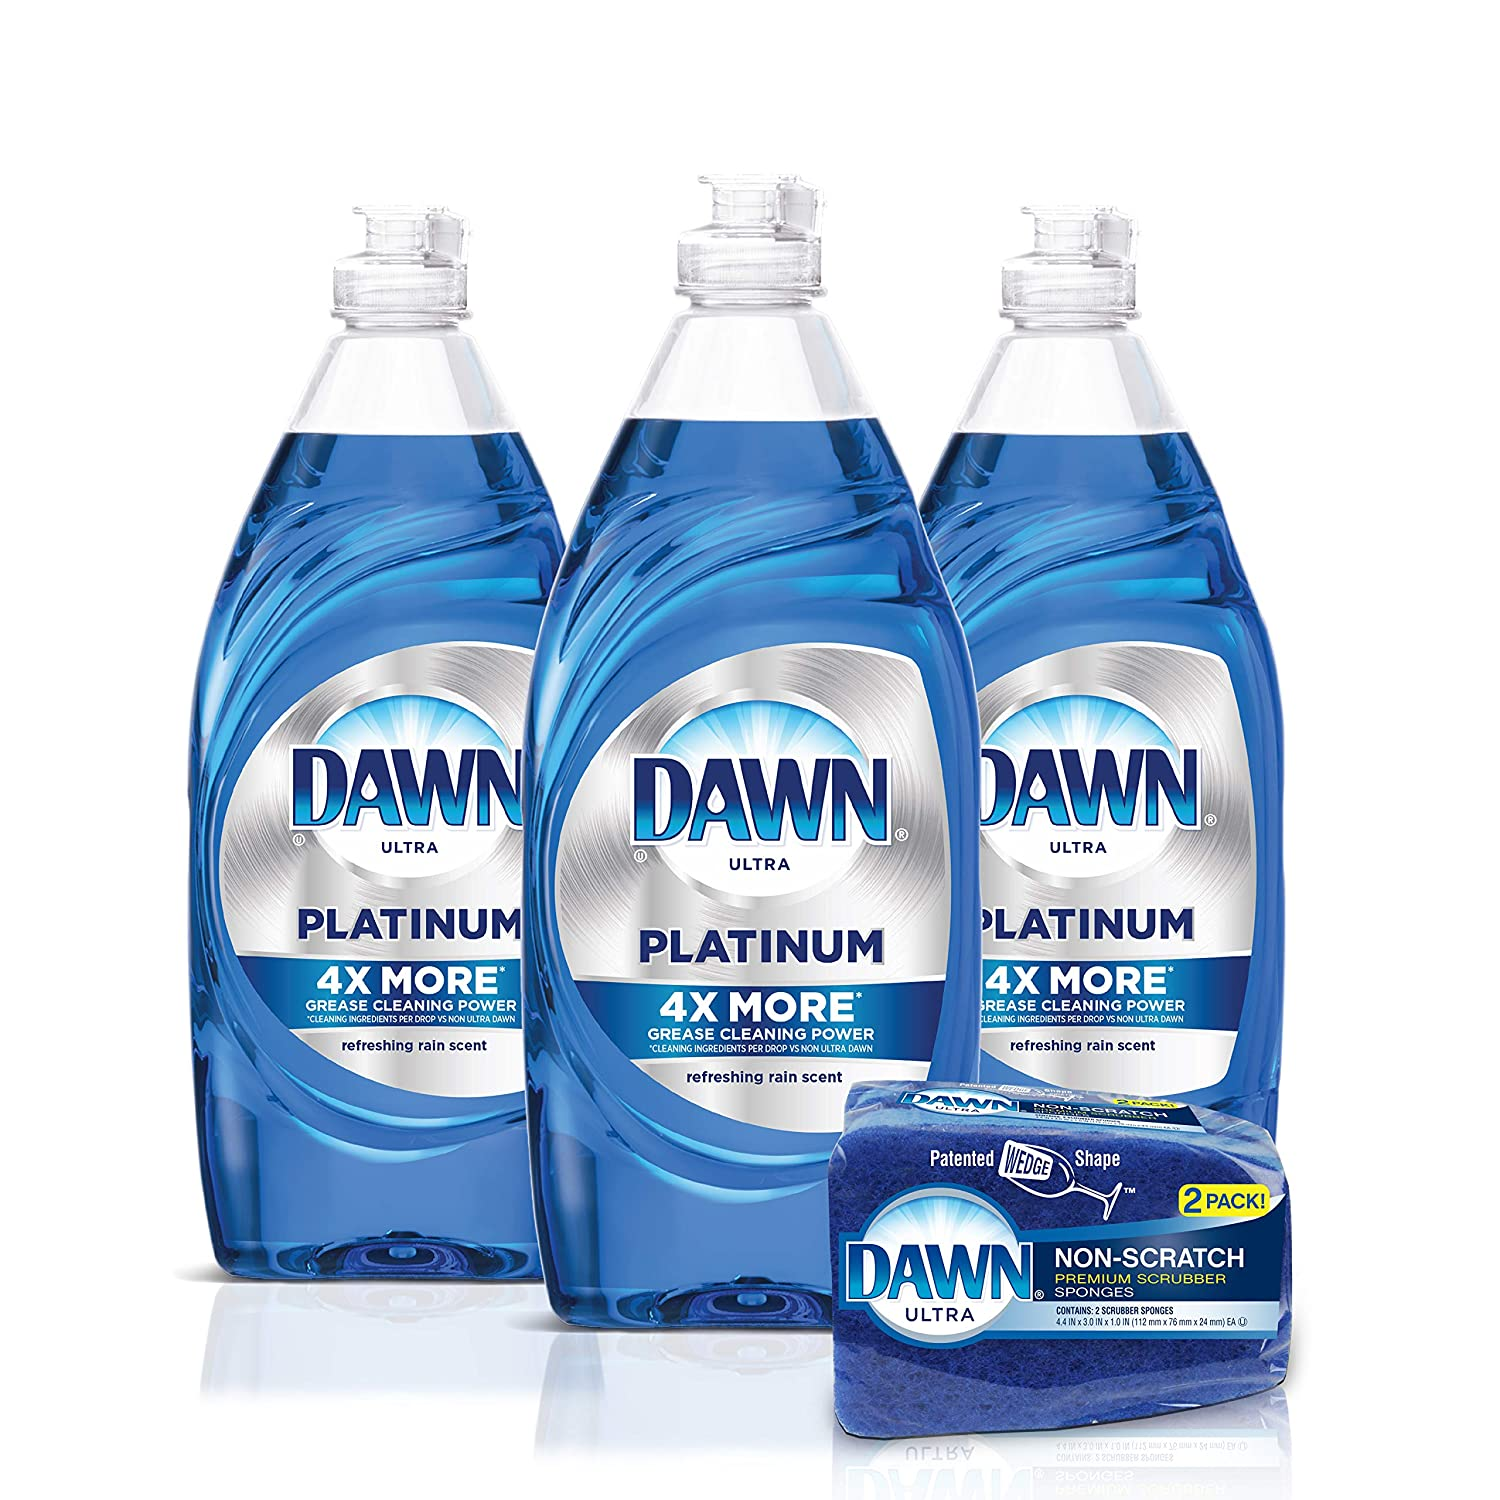 Dawn Platinum Dishwashing Liquid Dish Soap - 24 Fl Oz (Pack of 3) + Non-Scratch Sponge (2 Count), Refreshing Rain